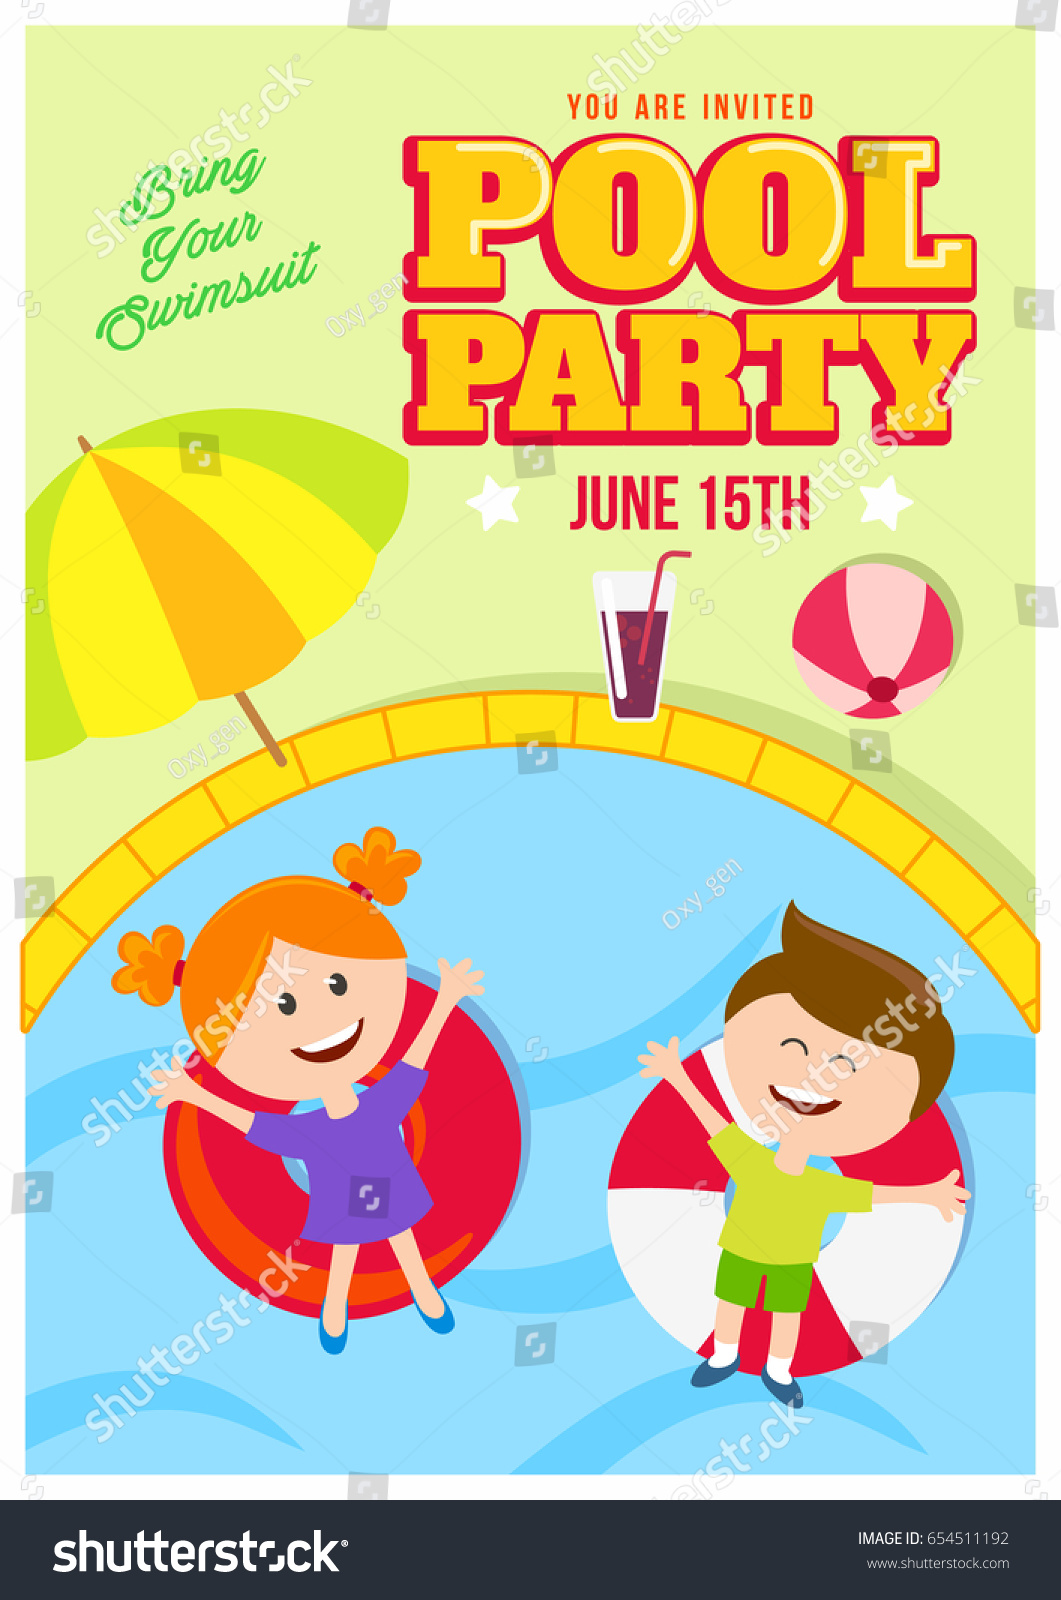 Pool Party Invitation Colorful Poster Flat Stock Vector 654511192 ...